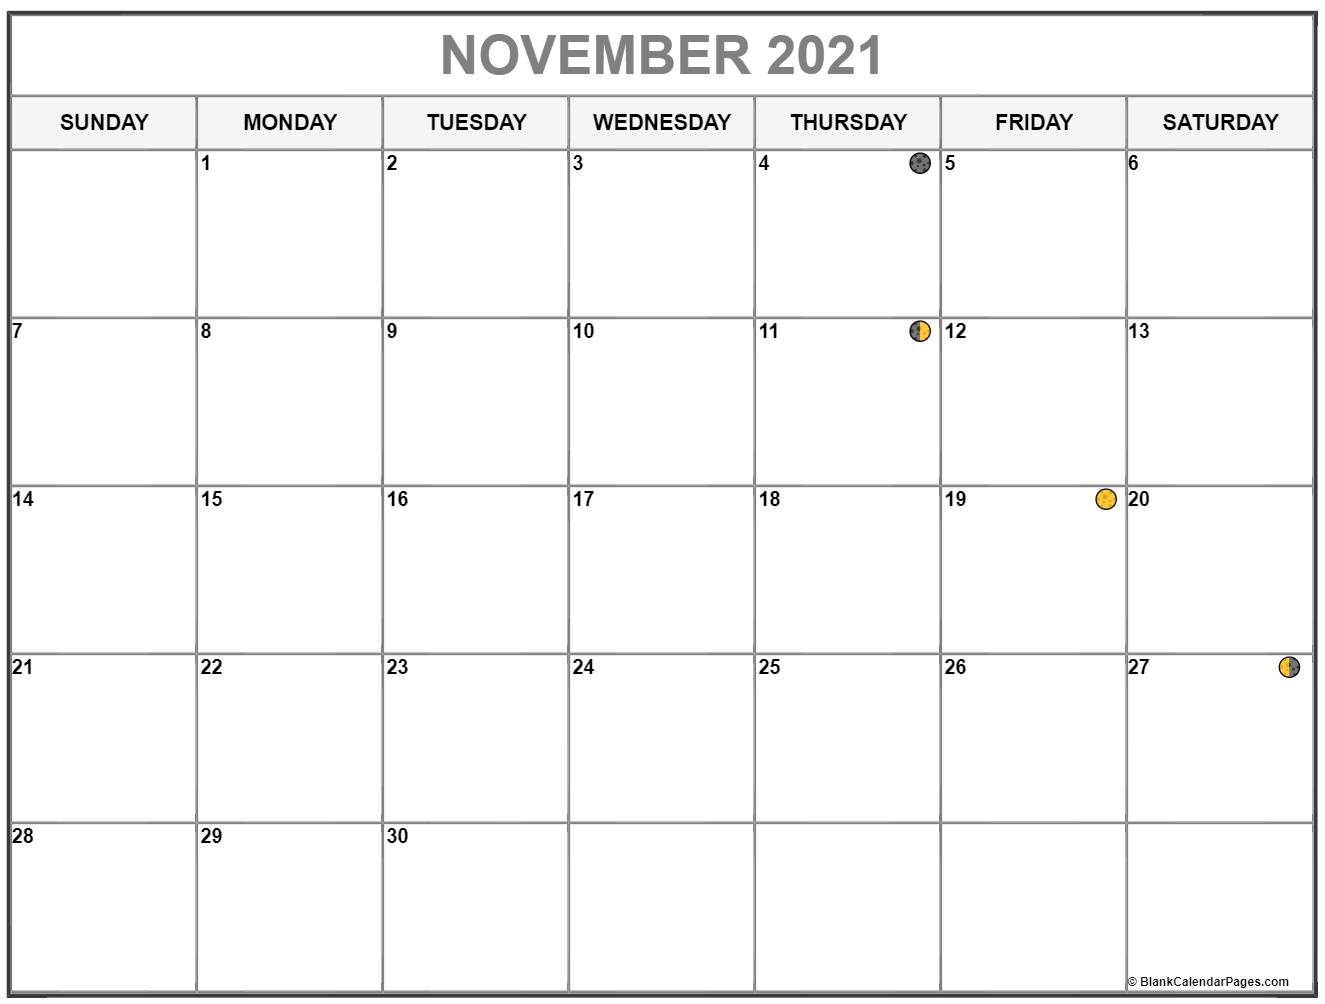 November 2020 lunar calendar. Moon phases with USA holidays